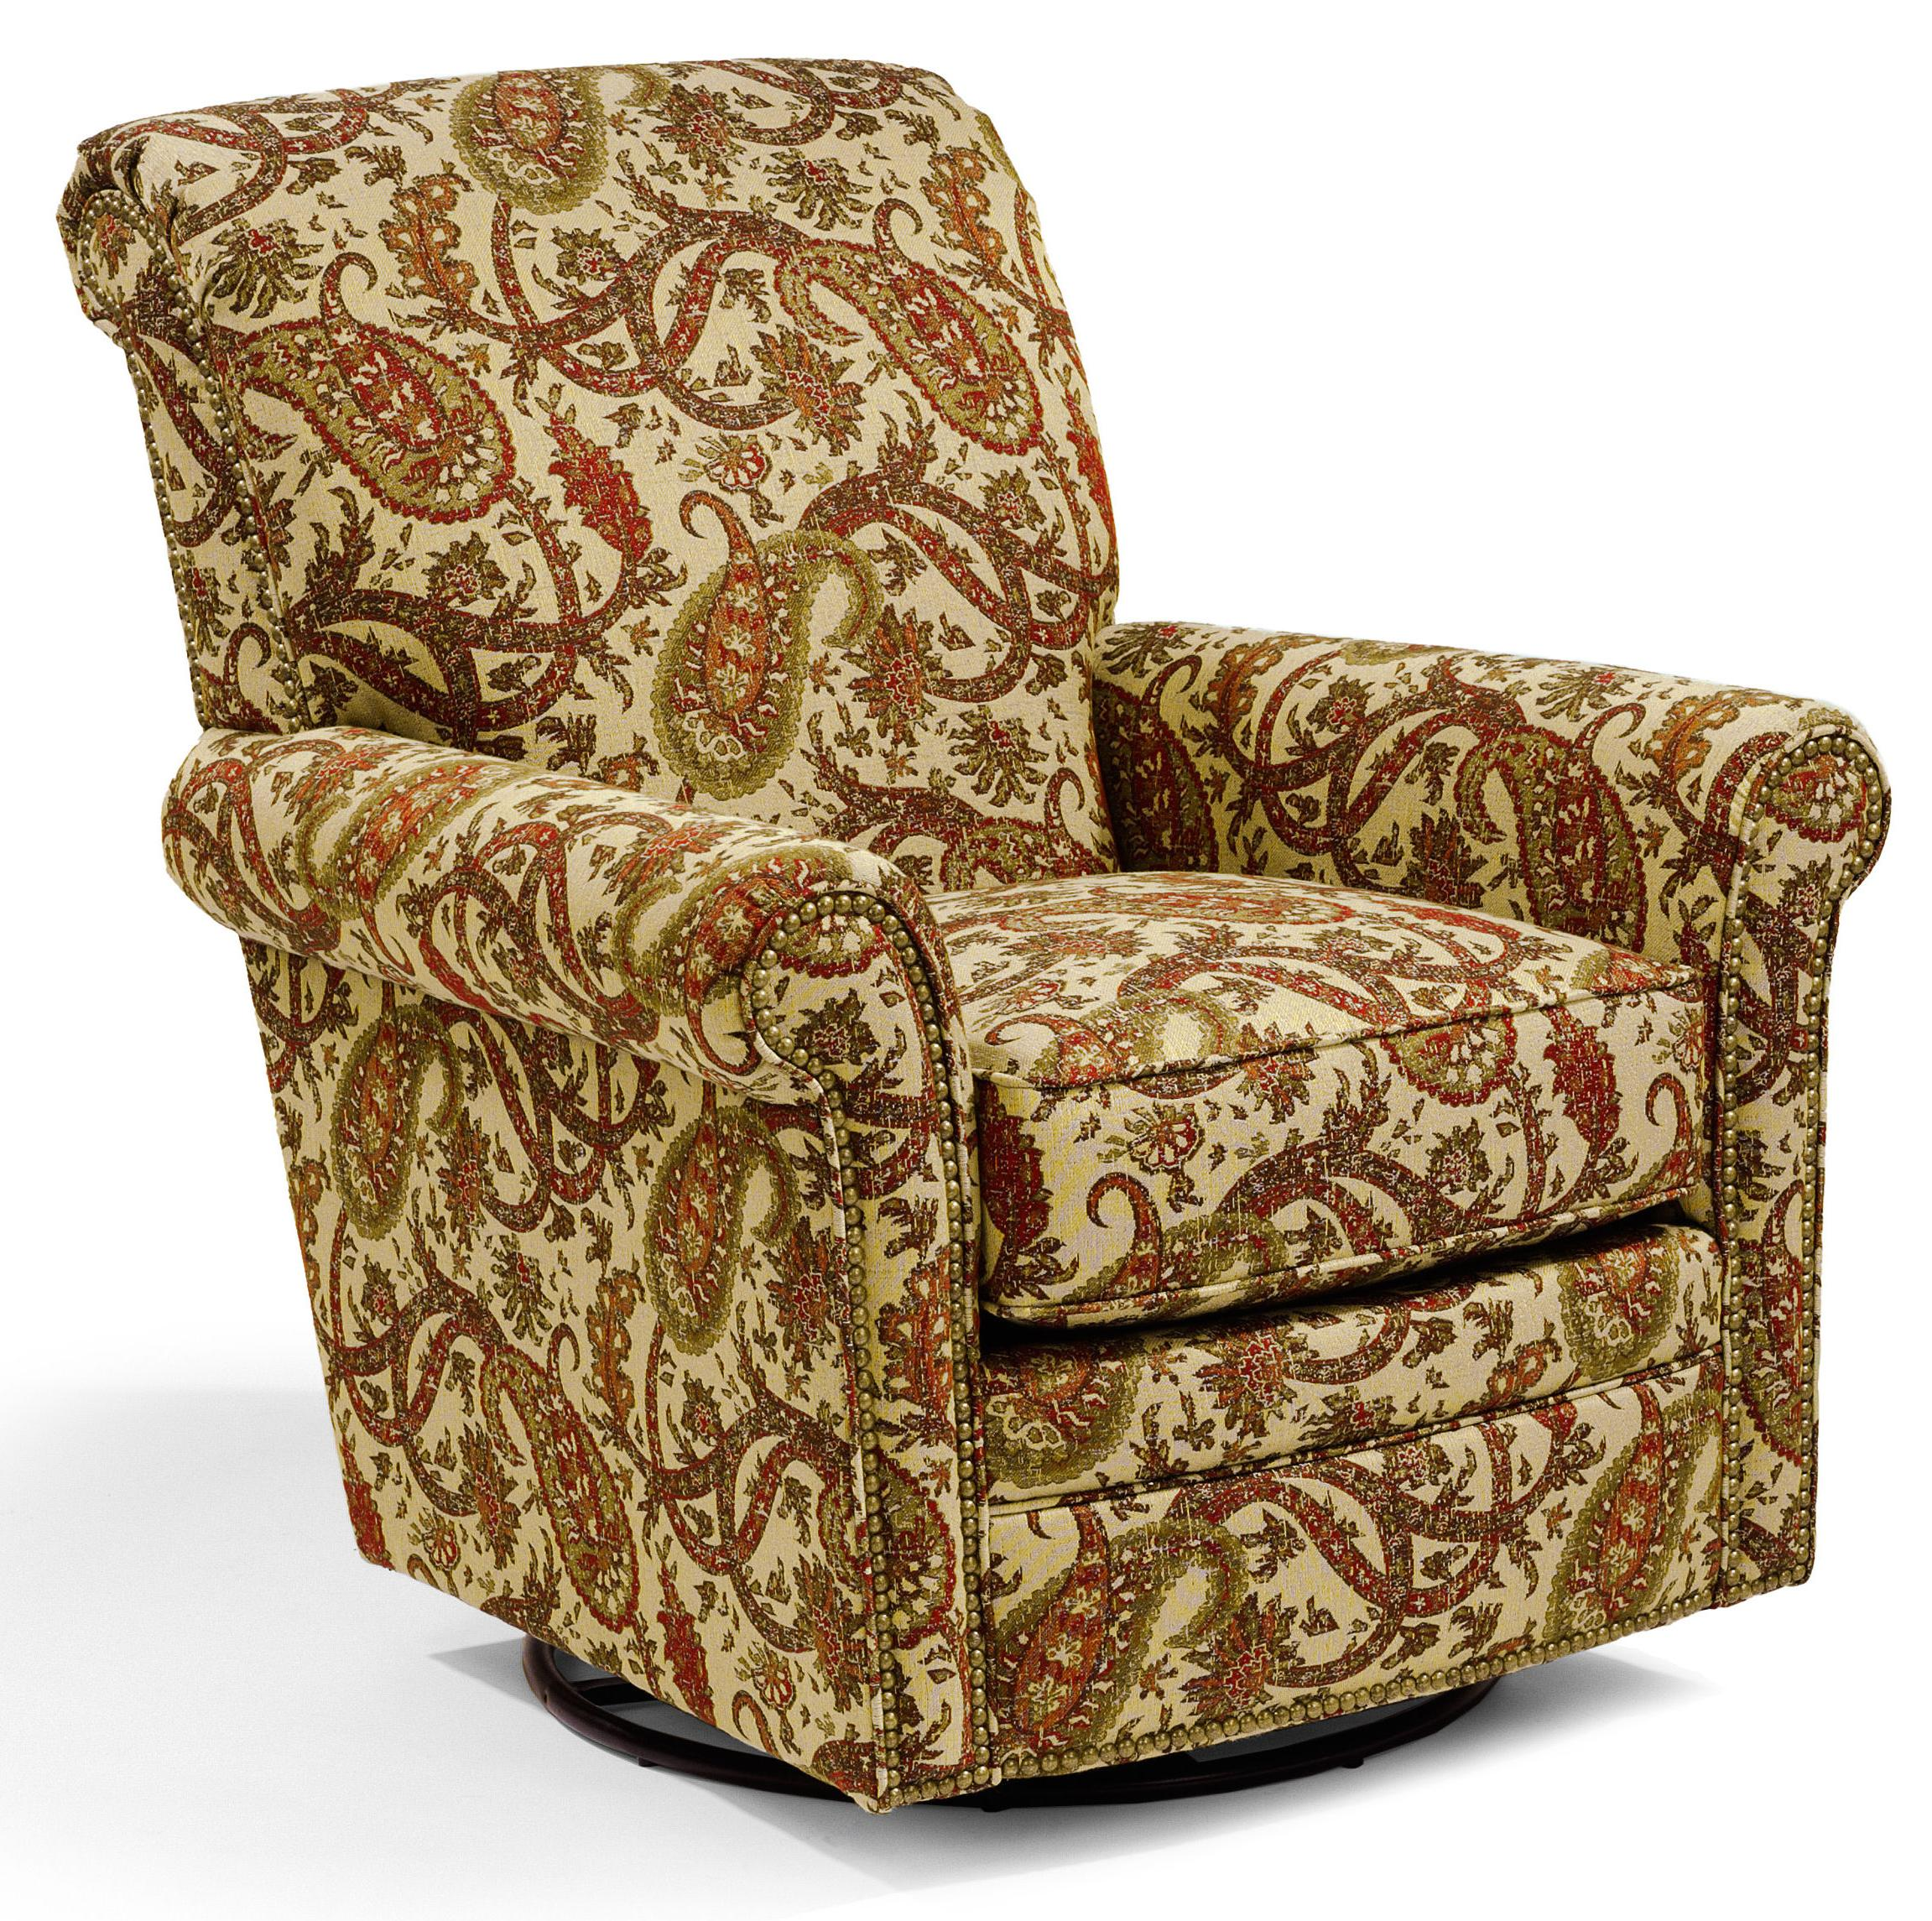 Accents Plaza Swivel Glider by Flexsteel at Williams & Kay